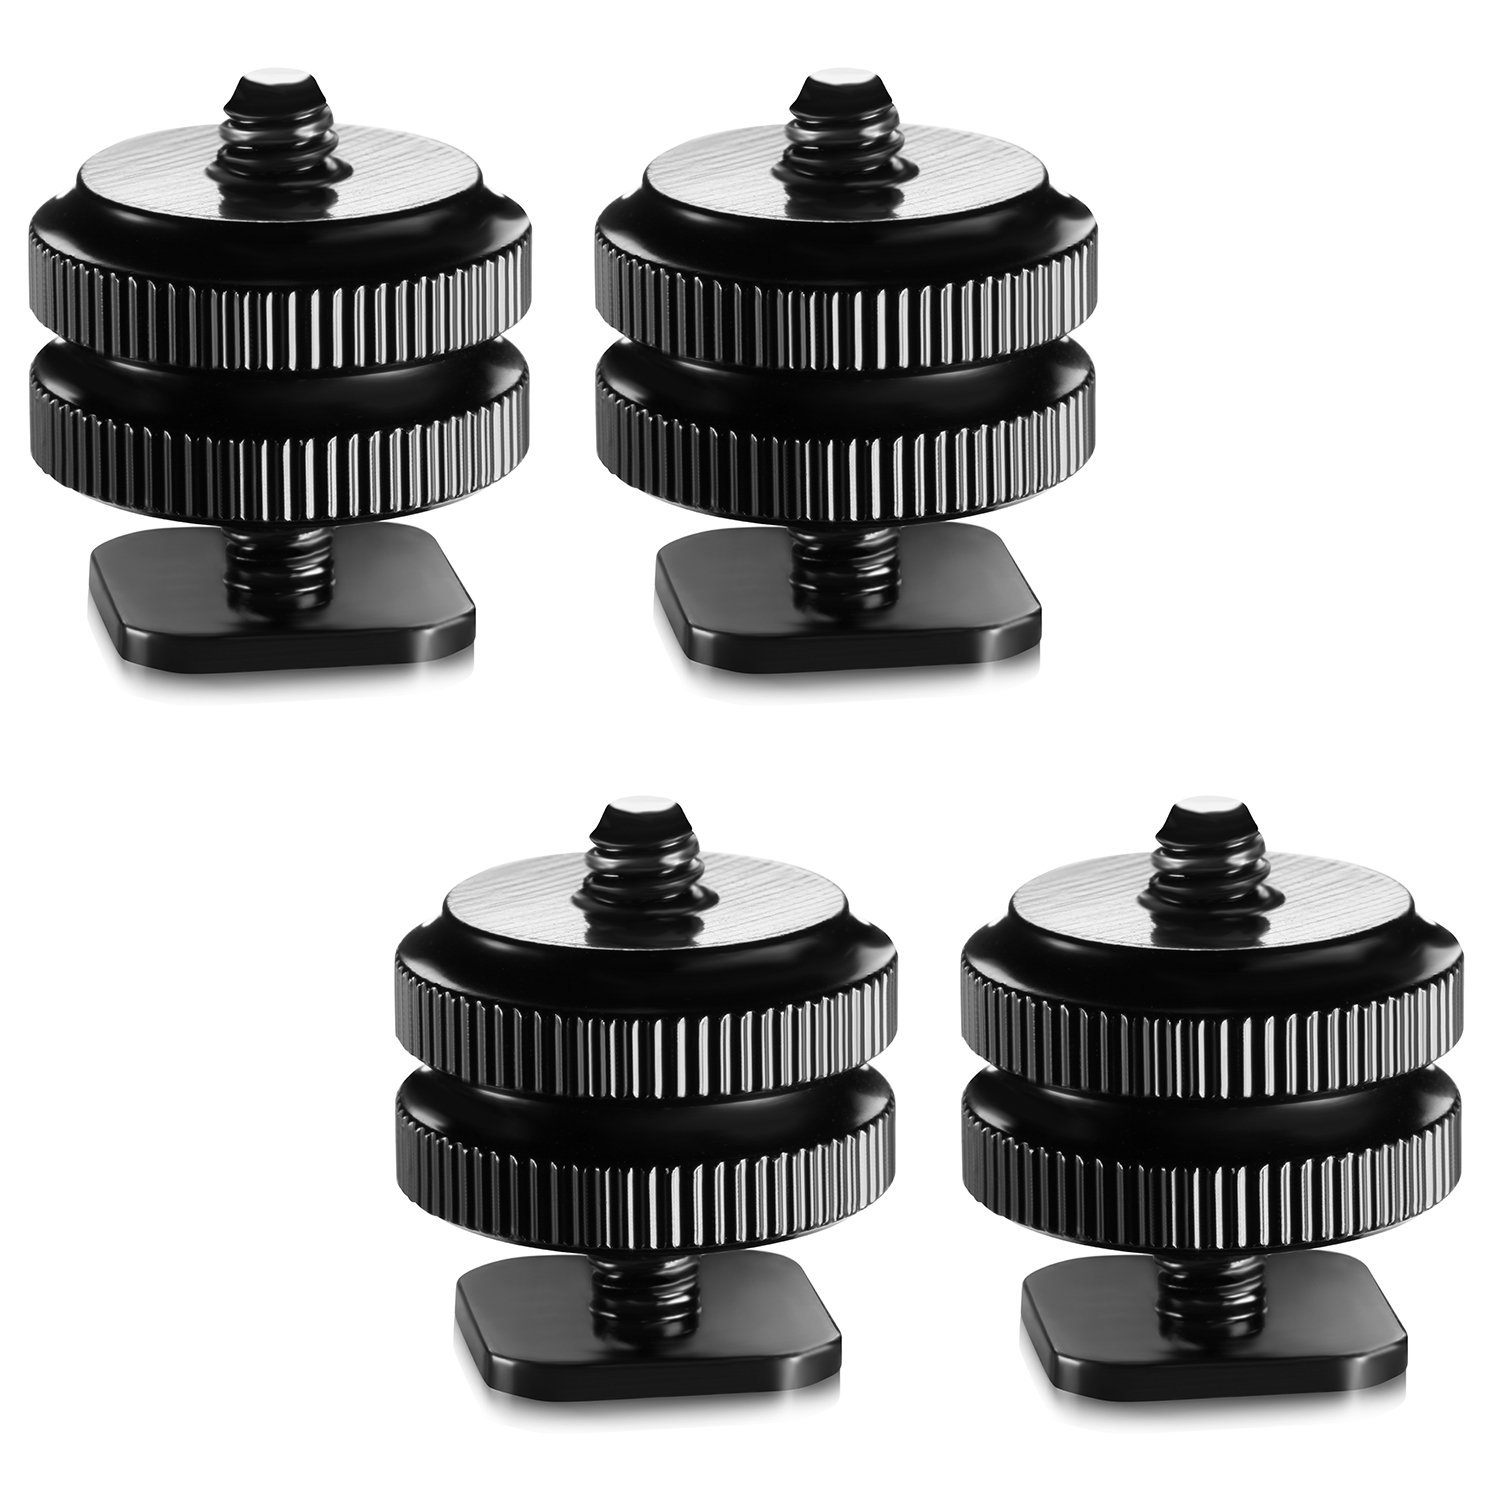 Neewer Black 1/4 inch Tripod Screw to Flash Hot Shoe Mount Adapter (Set of 4)